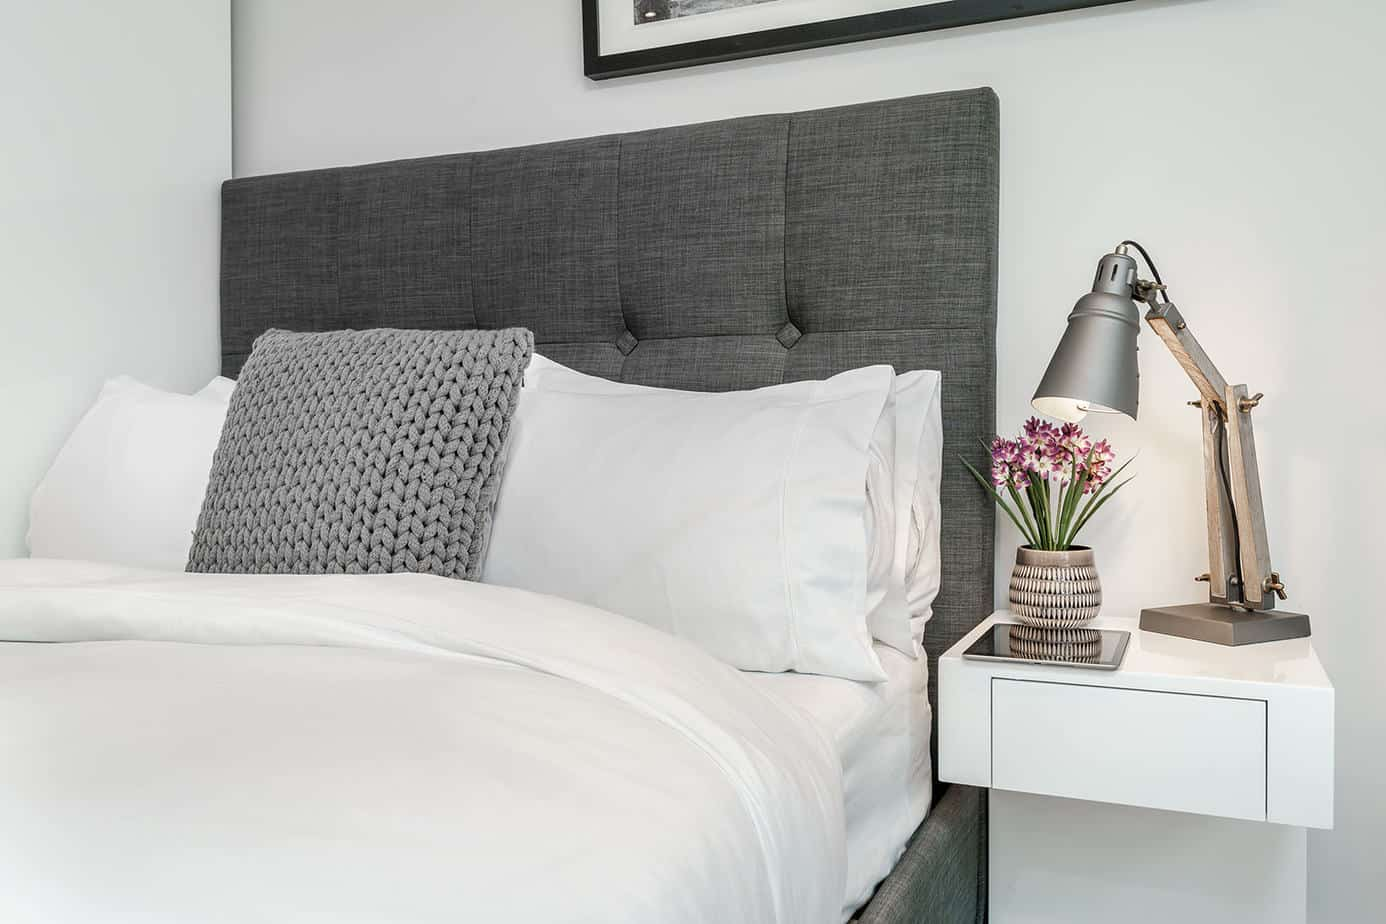 Tailored Stays Victoria Road Serviced Apartments Cambridge provide a home from home experience.